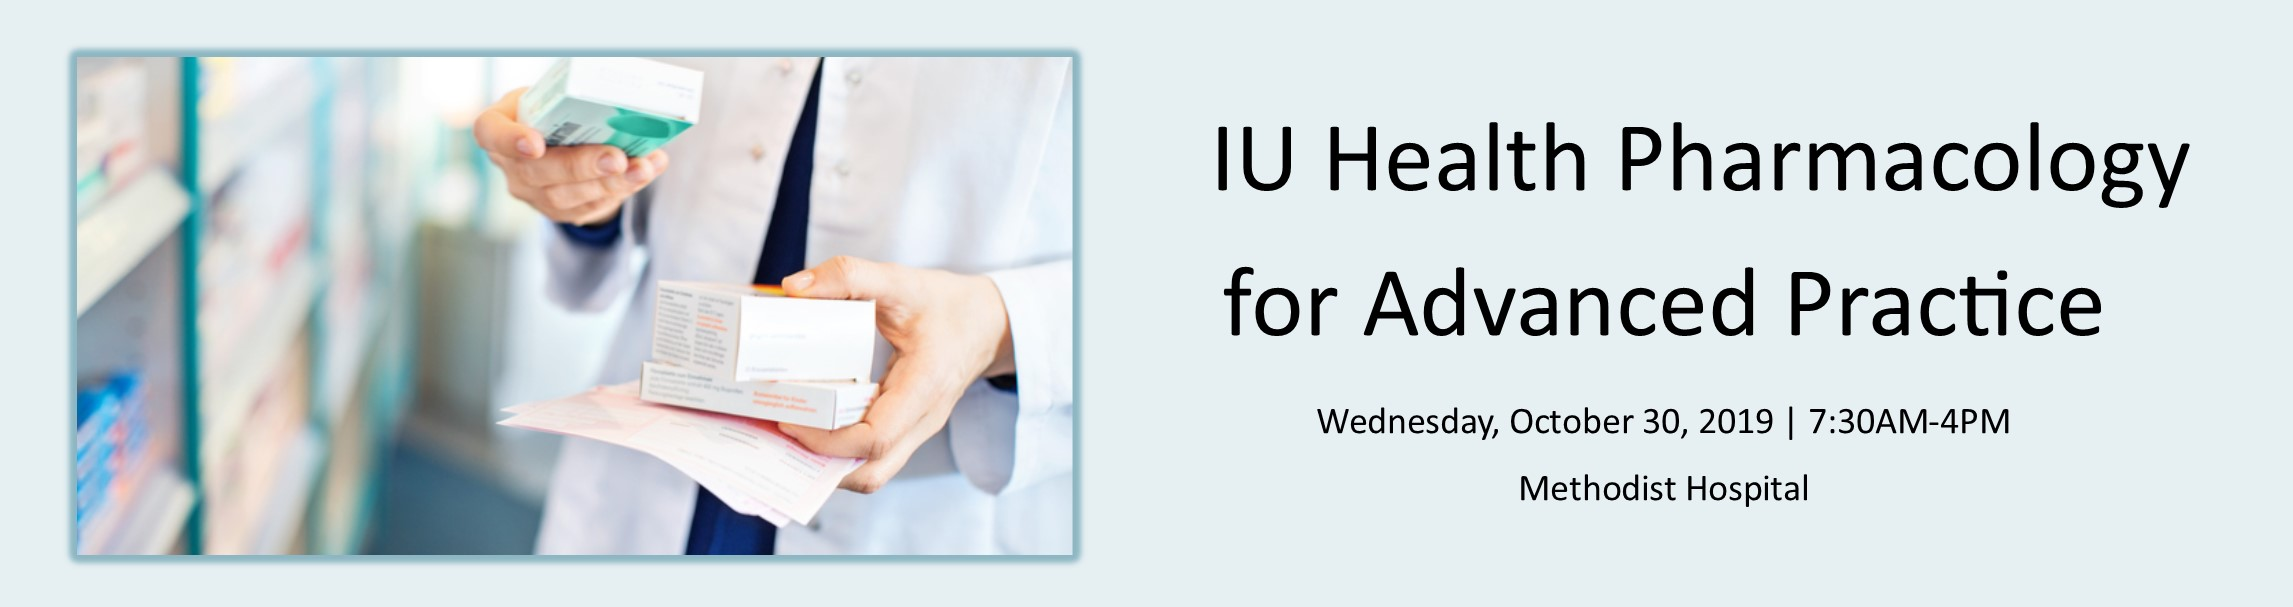 IU Health Pharmacology for Advanced Practice Providers Banner